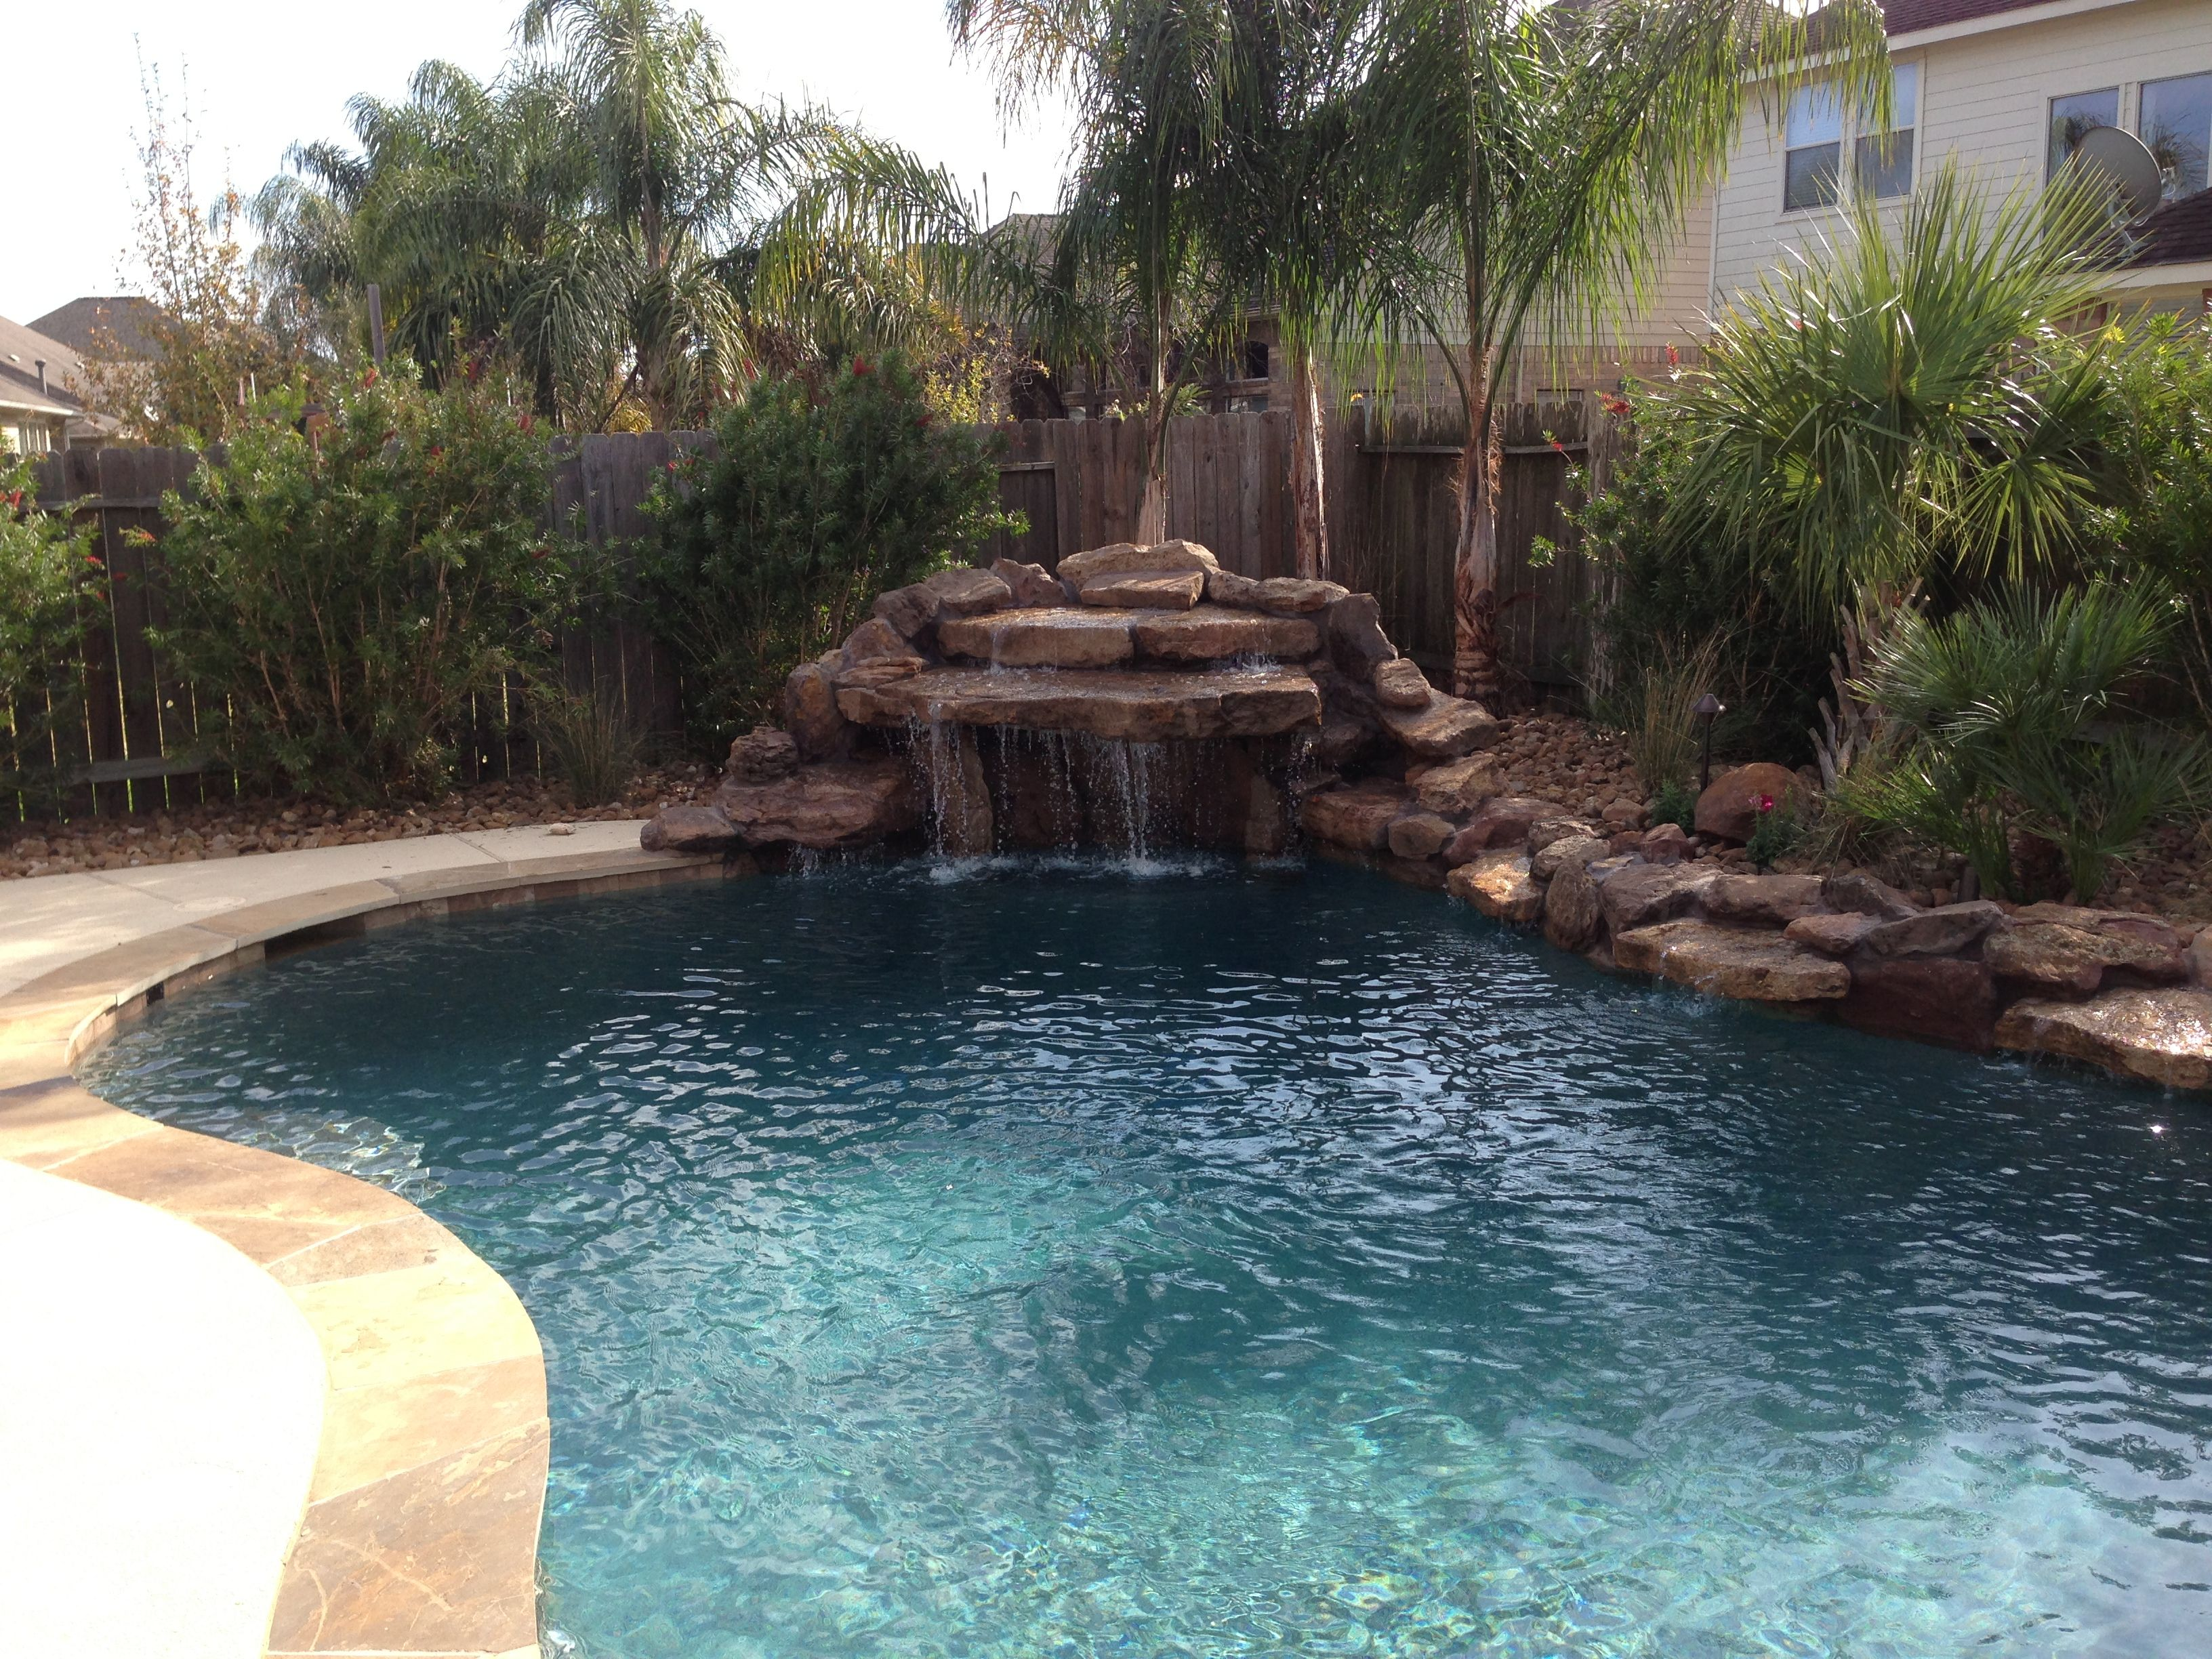 Water Feature Photos Pearland Friendswood Waterfalls League City Chocolate Moss Rock Waterfall Pool Waterfall Water Features Pool